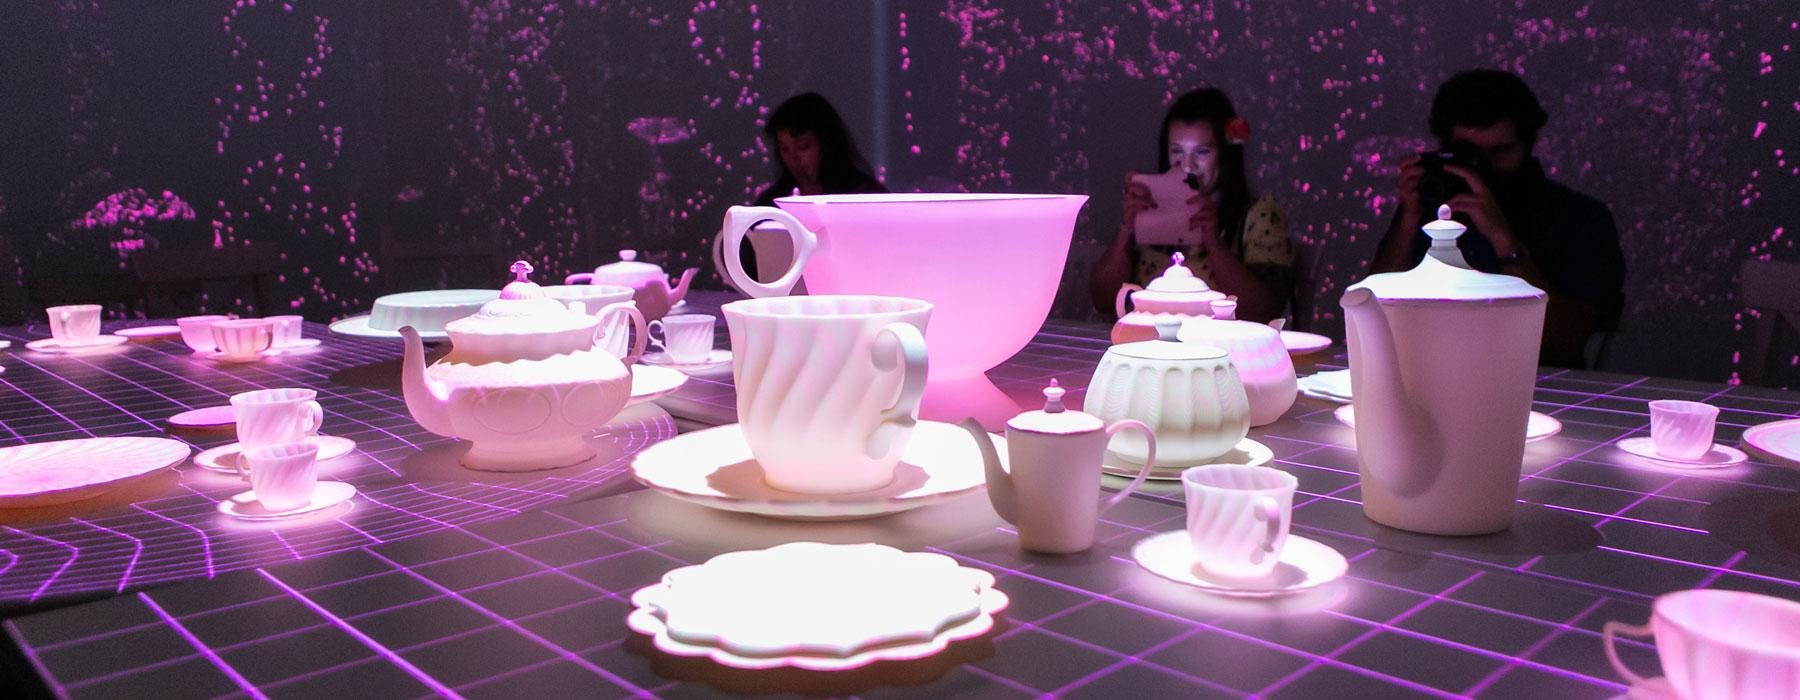 Three people sit at a table with a tea set on it. Digital projections cover the table and the walls.